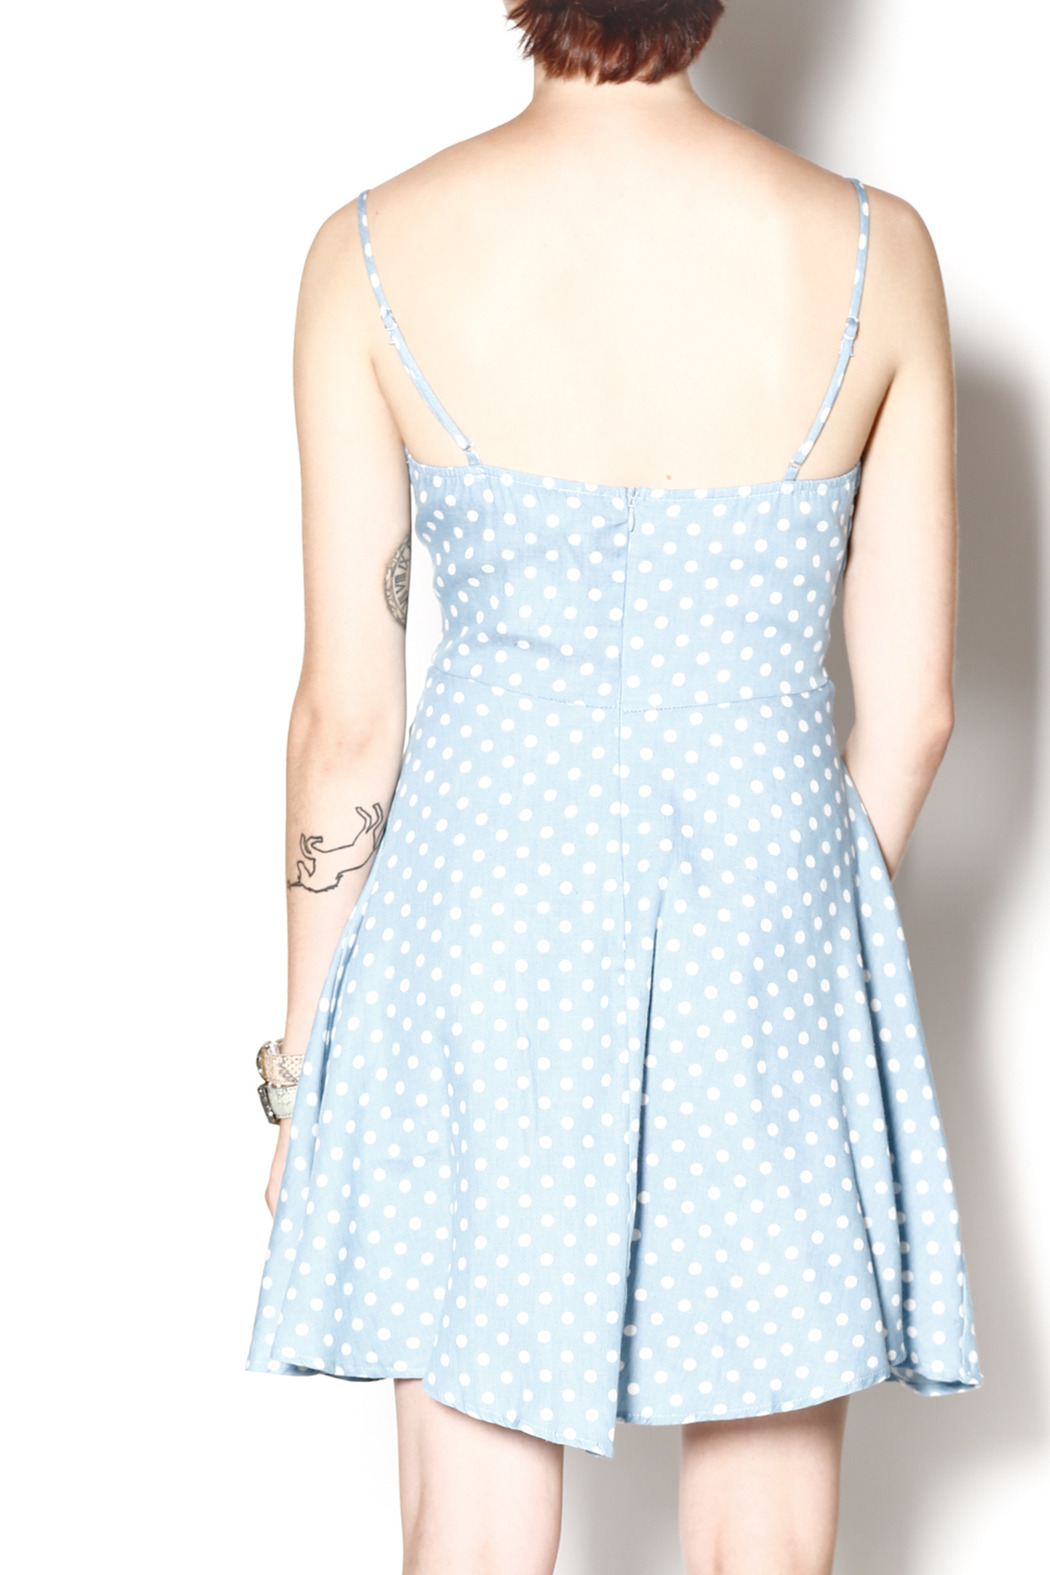 Everly Dotty Chambray Dress - Back Cropped Image